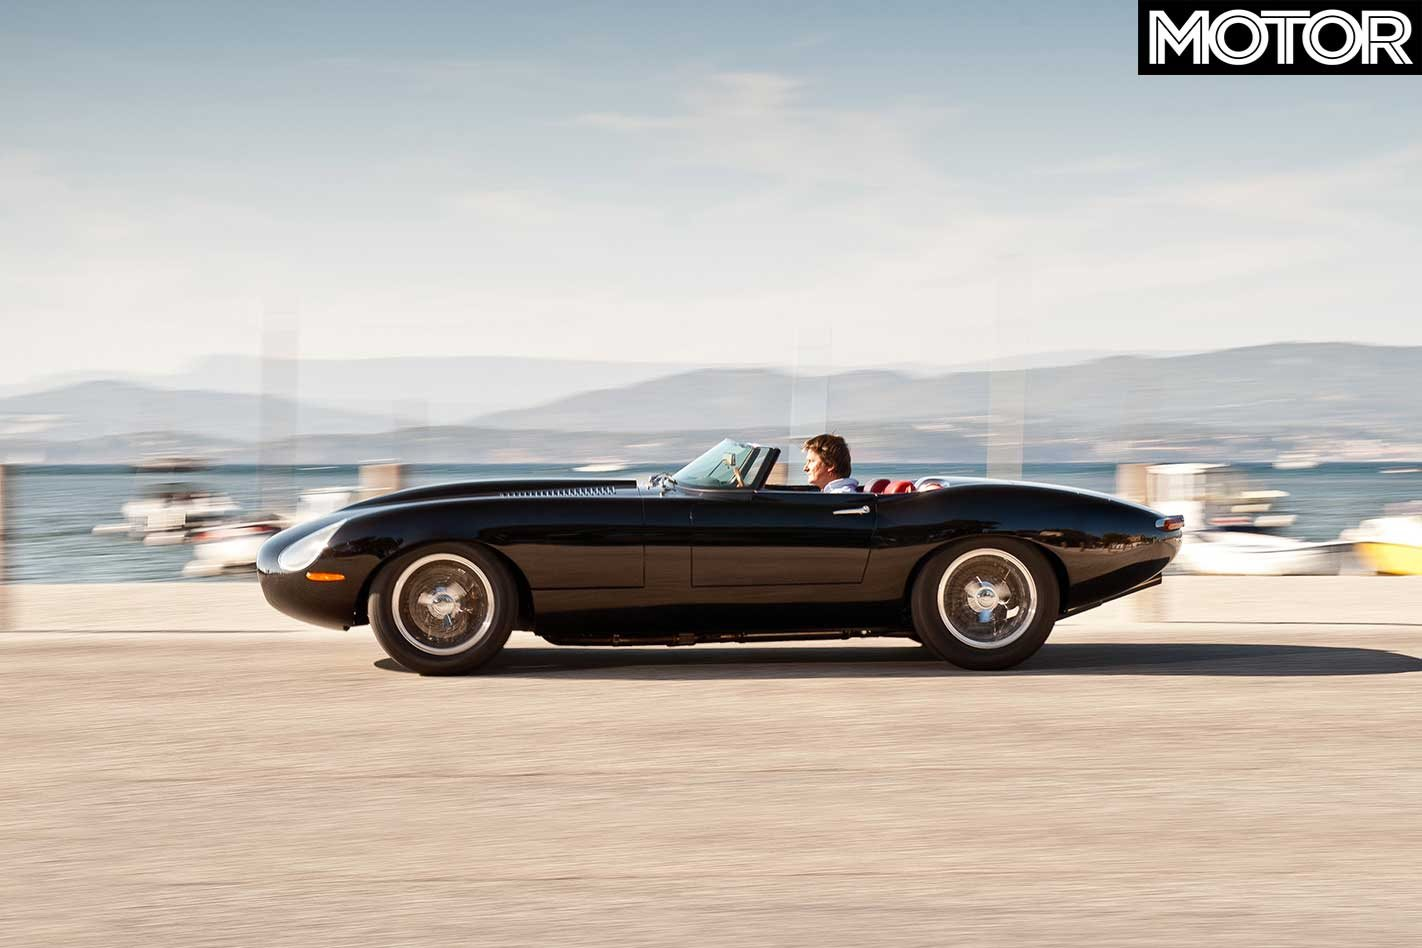 The best modernised classic cars